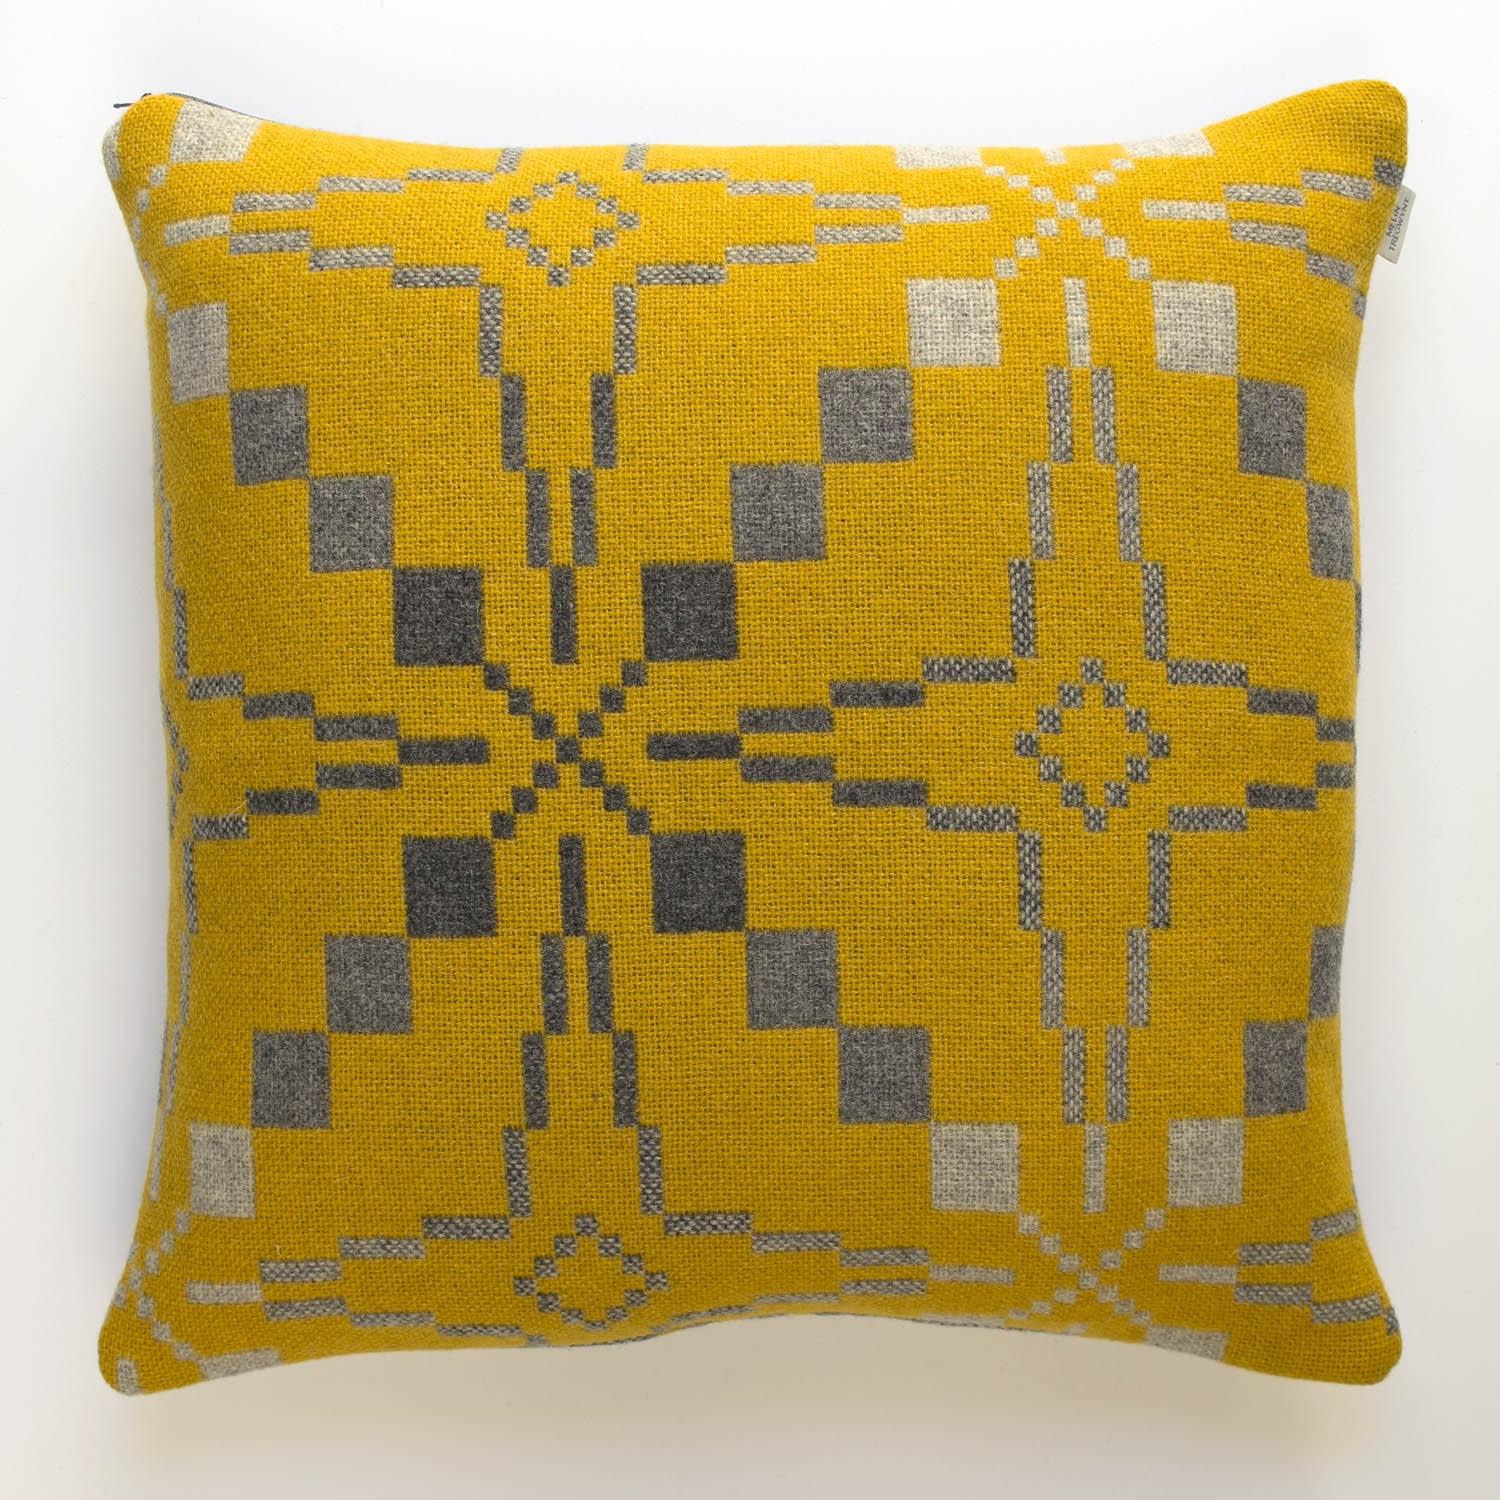 Vintage star gorse cushion